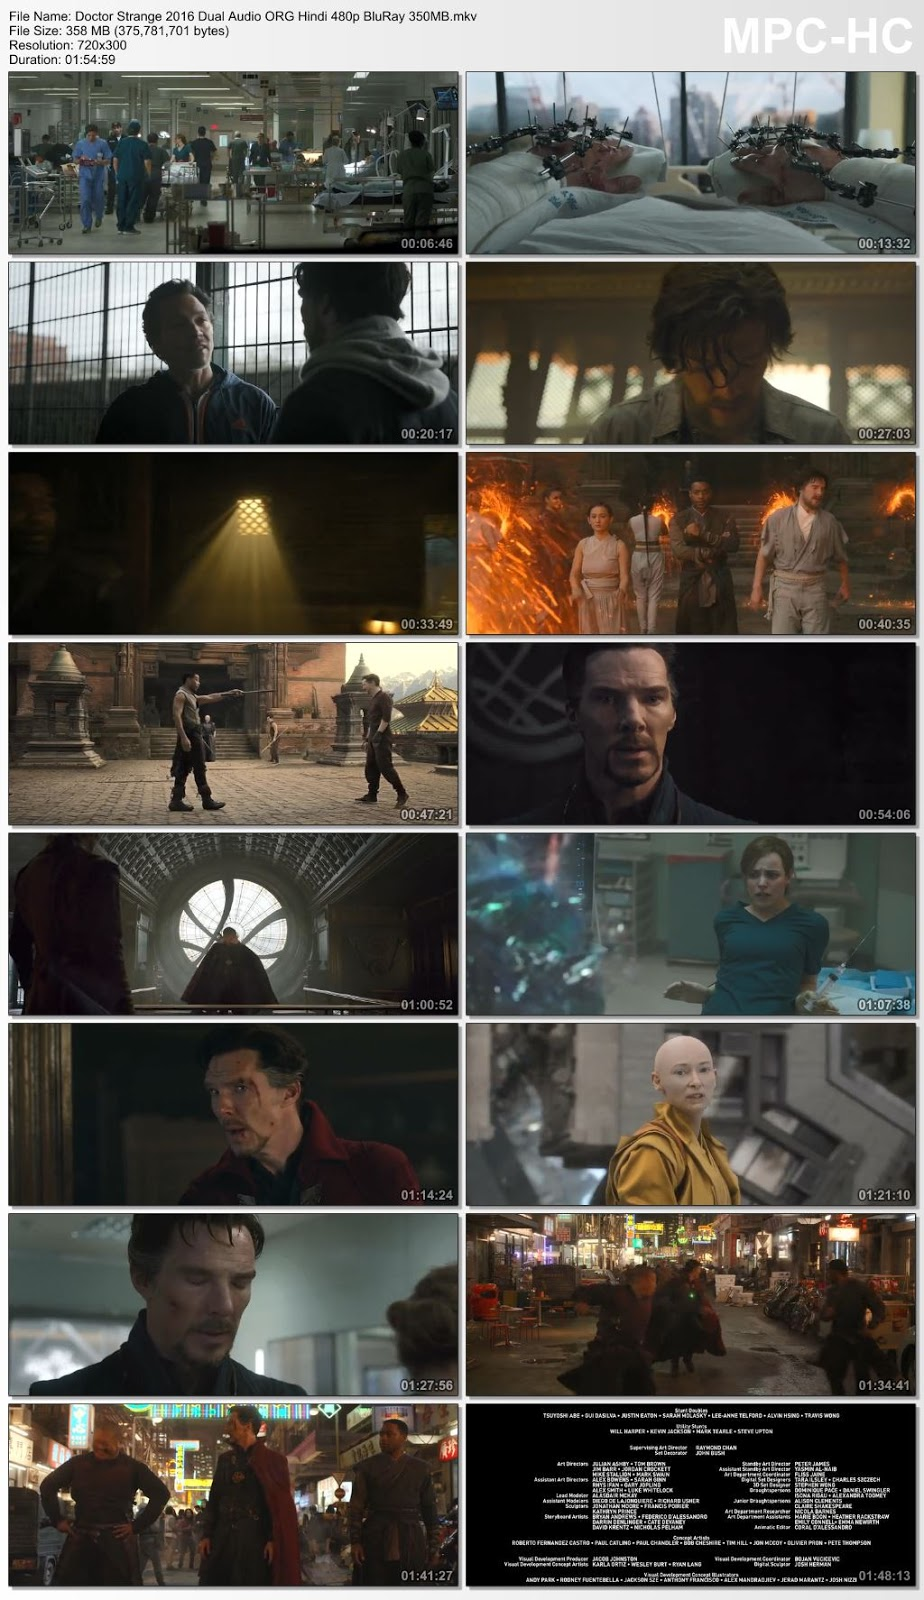 Doctor Strange 2016 Dual Audio ORG Hindi 480p BluRay 350MB Desirehub